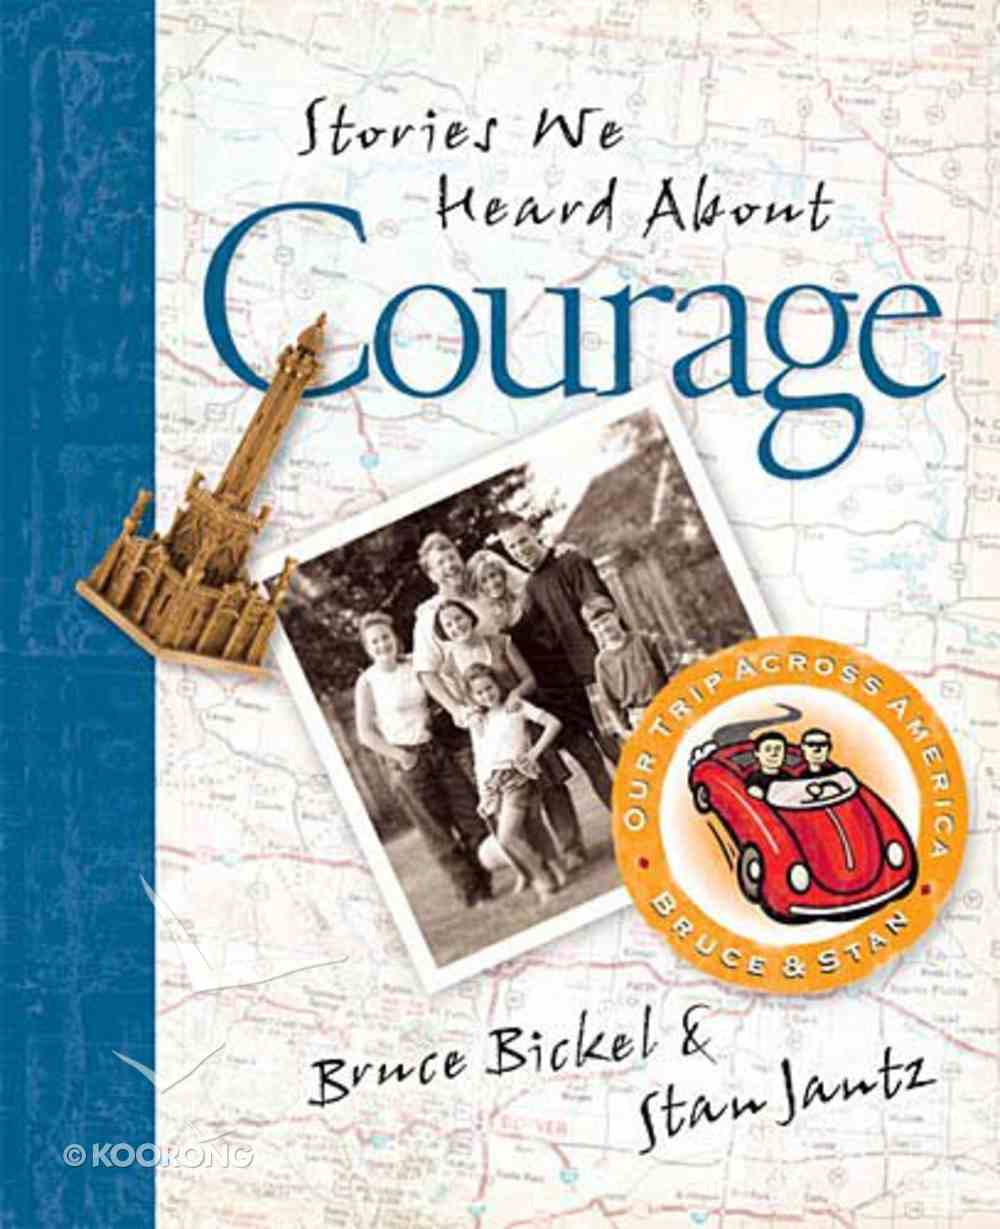 Stories We Heard About Courage Hardback